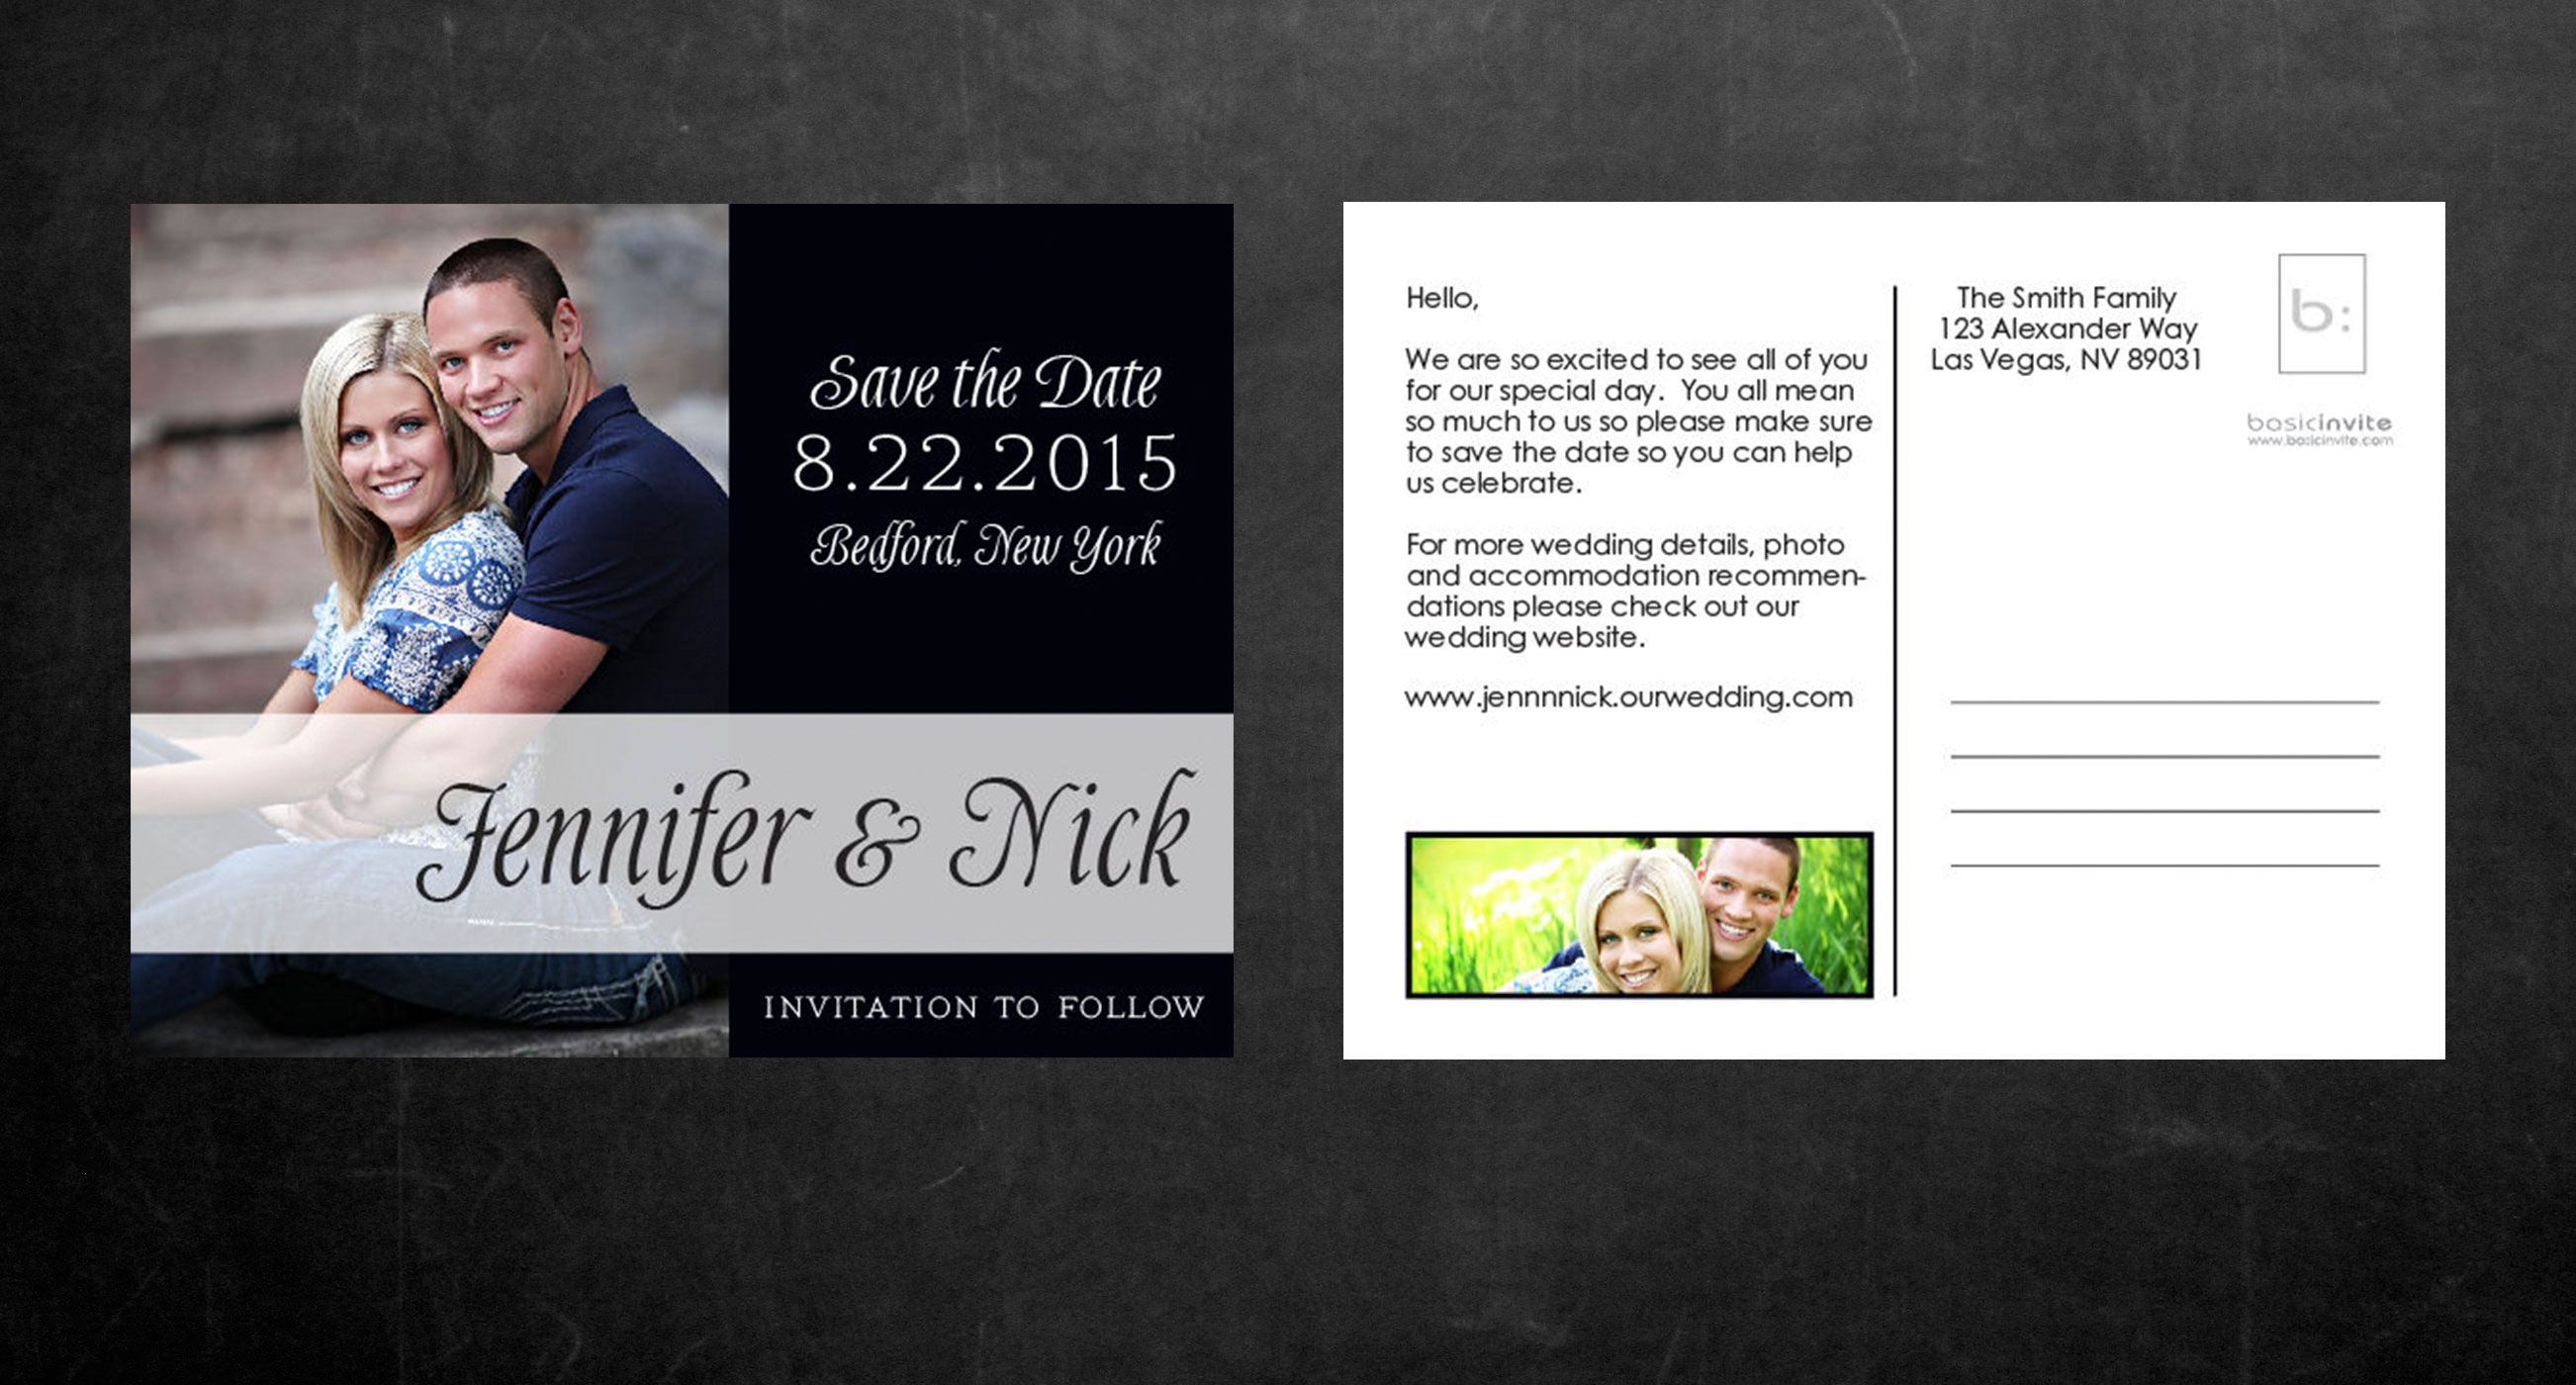 savethedatepostcardsavethedate – Wedding Save the Date Postcards